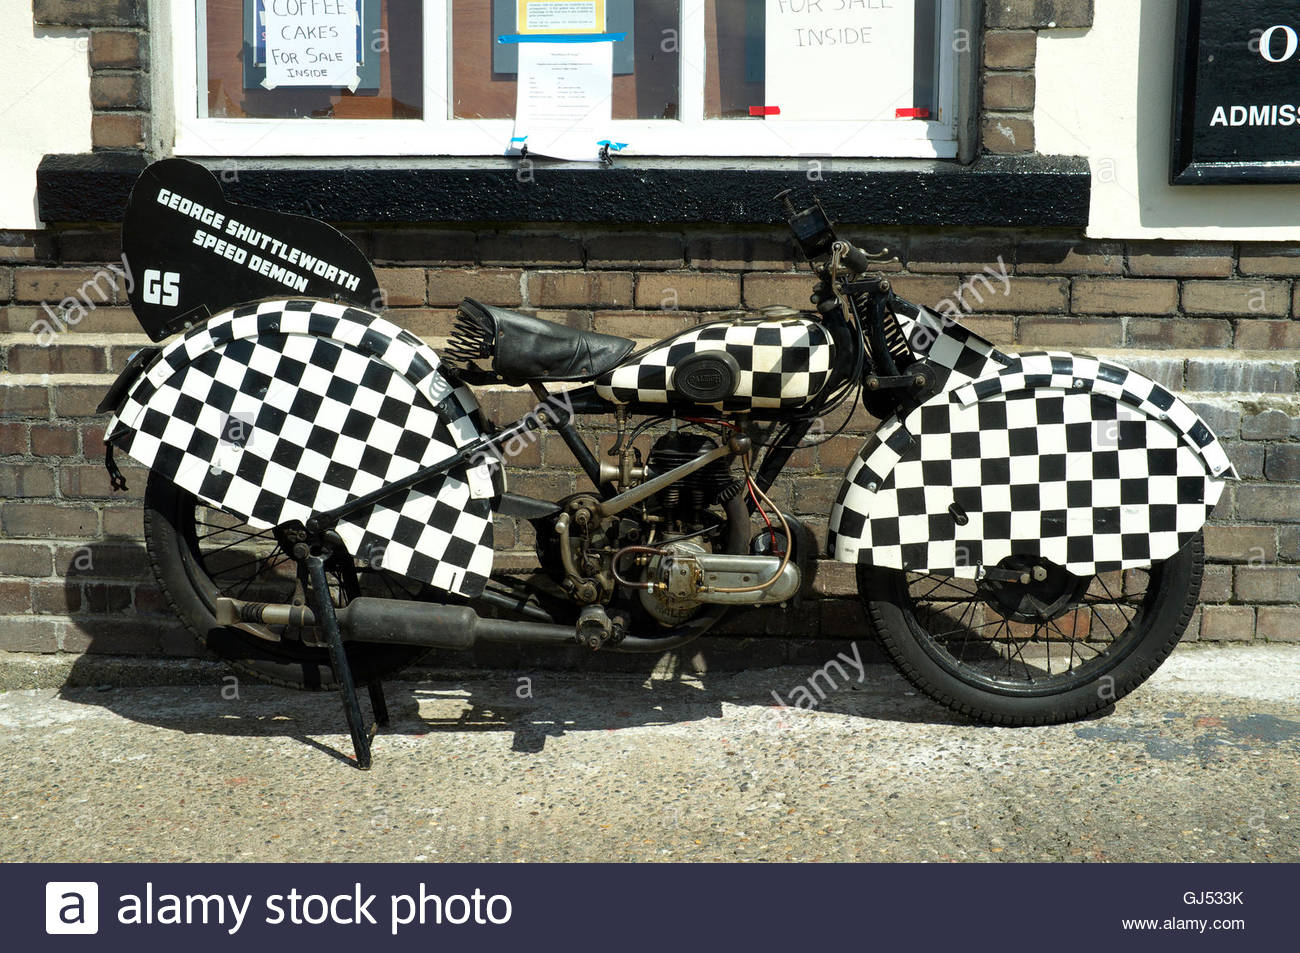 Eine Replik des Motorrads George Shuttleworth Speed Demon, Manx Transport Heritage Museum, Peel, Isle Of man. Stockbild